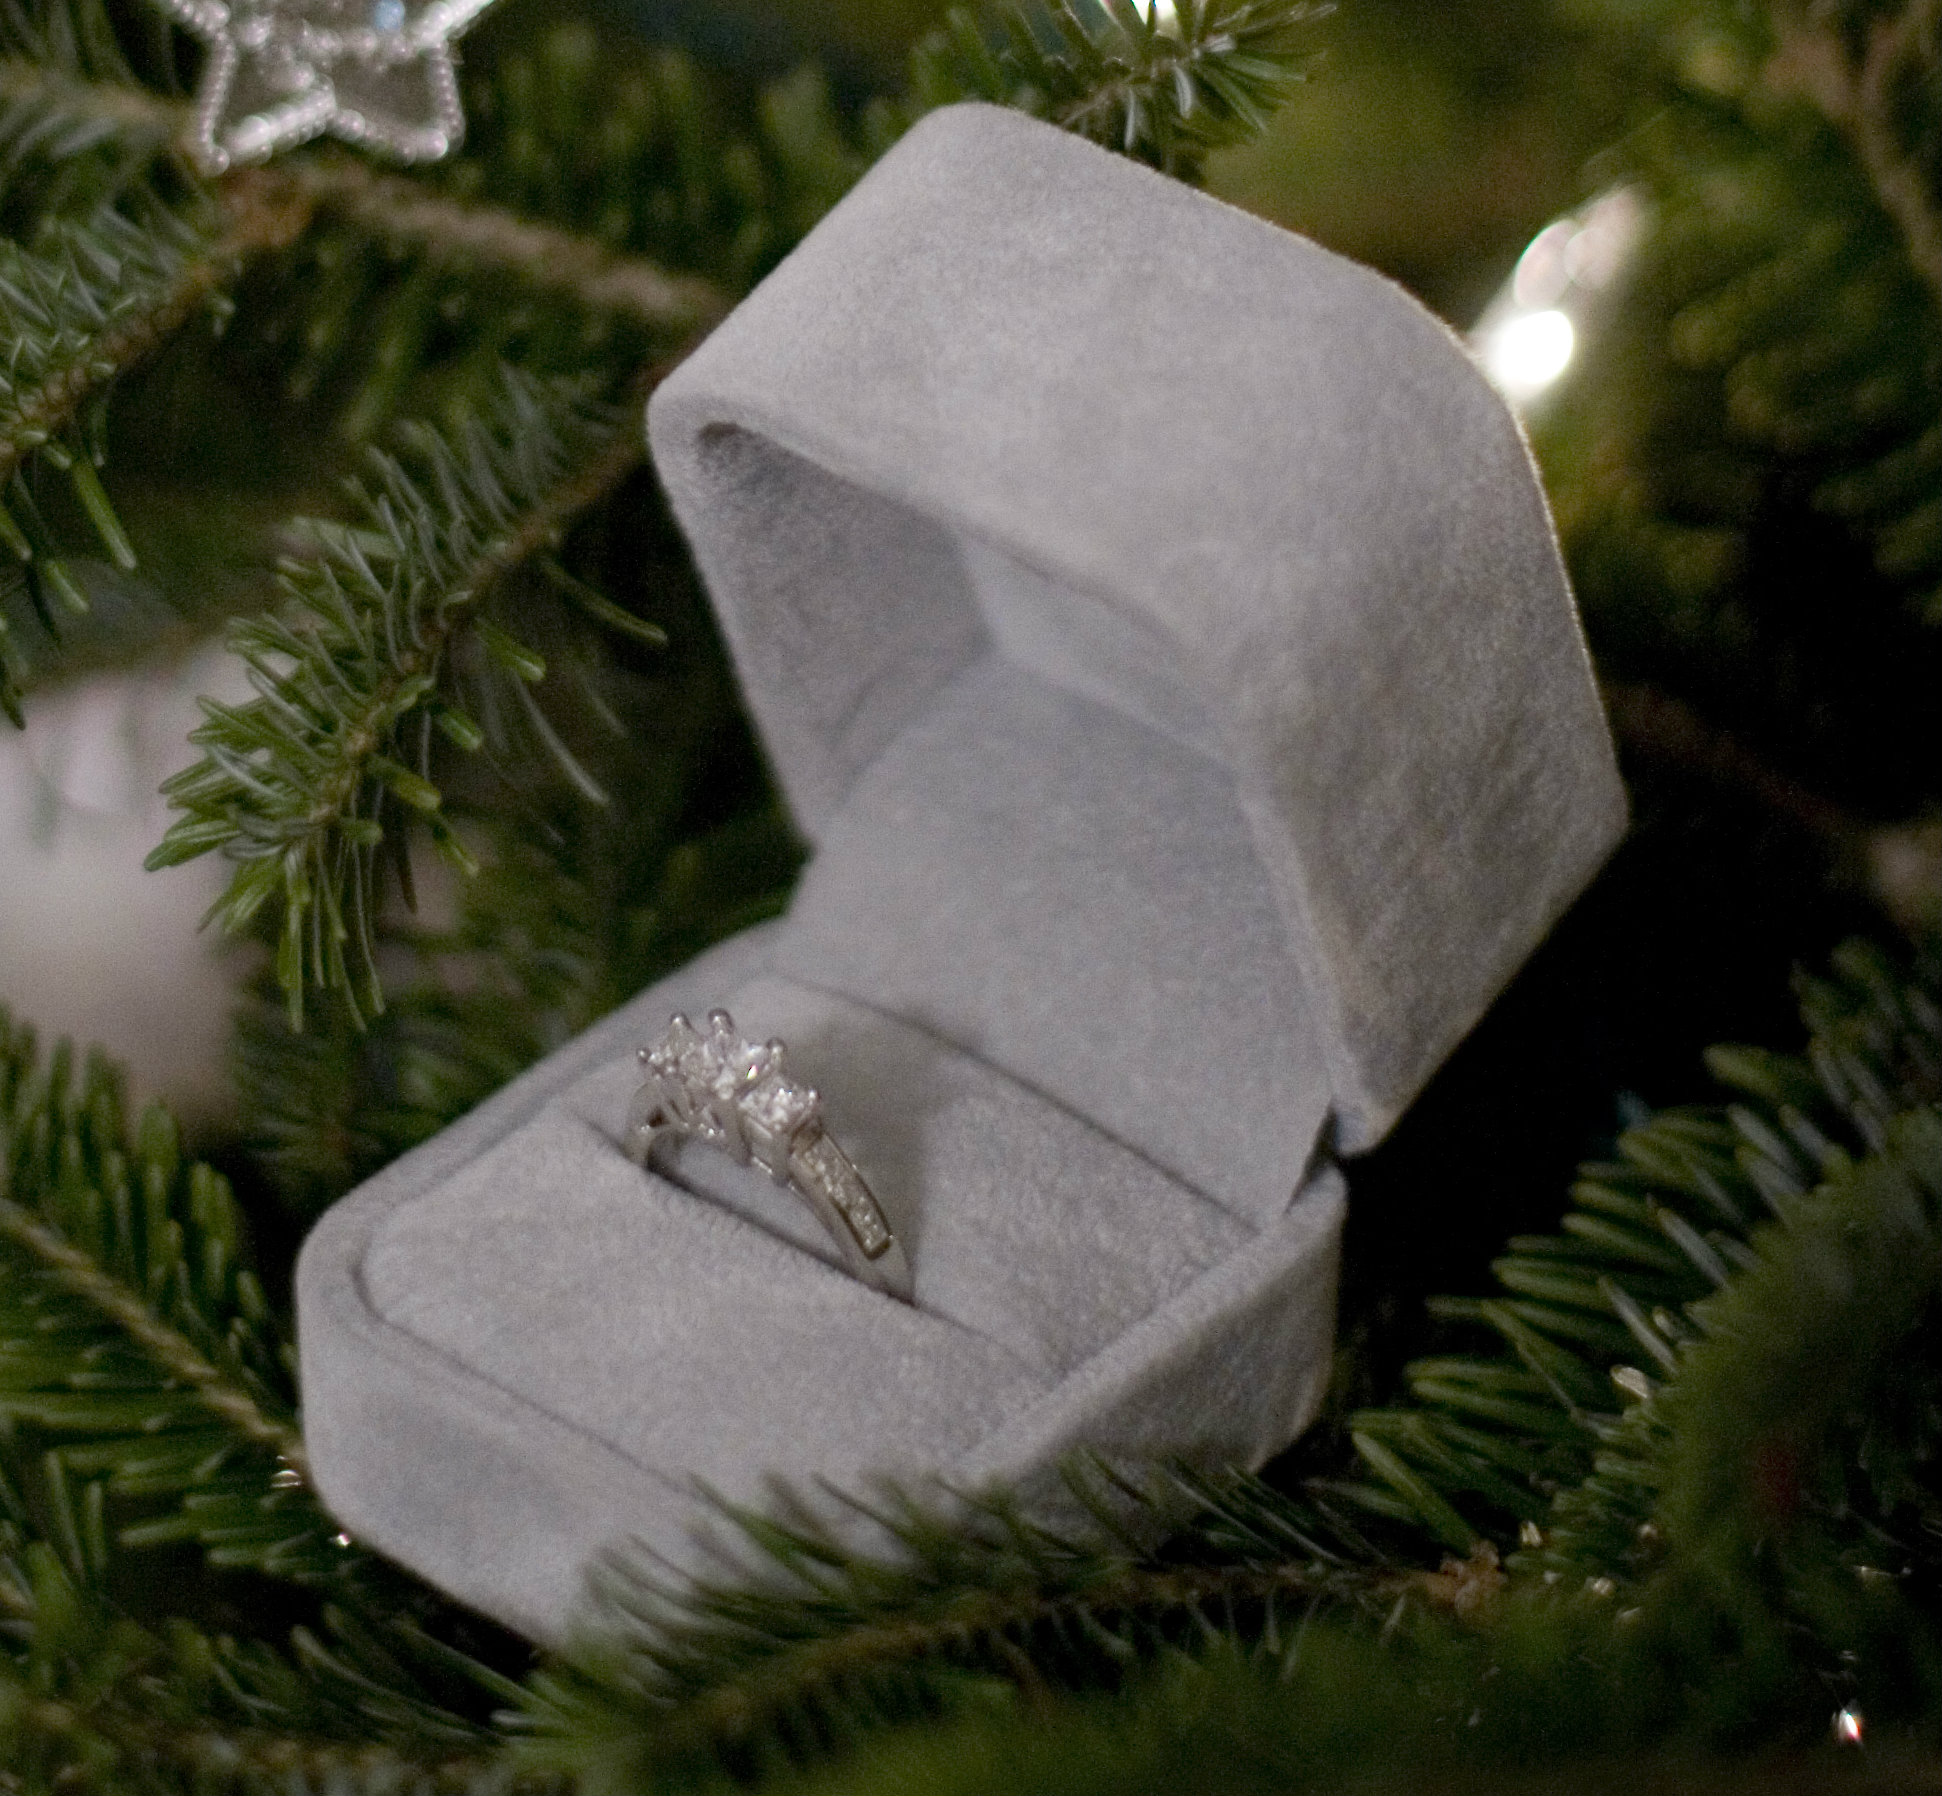 Have a Very Merry Proposal!